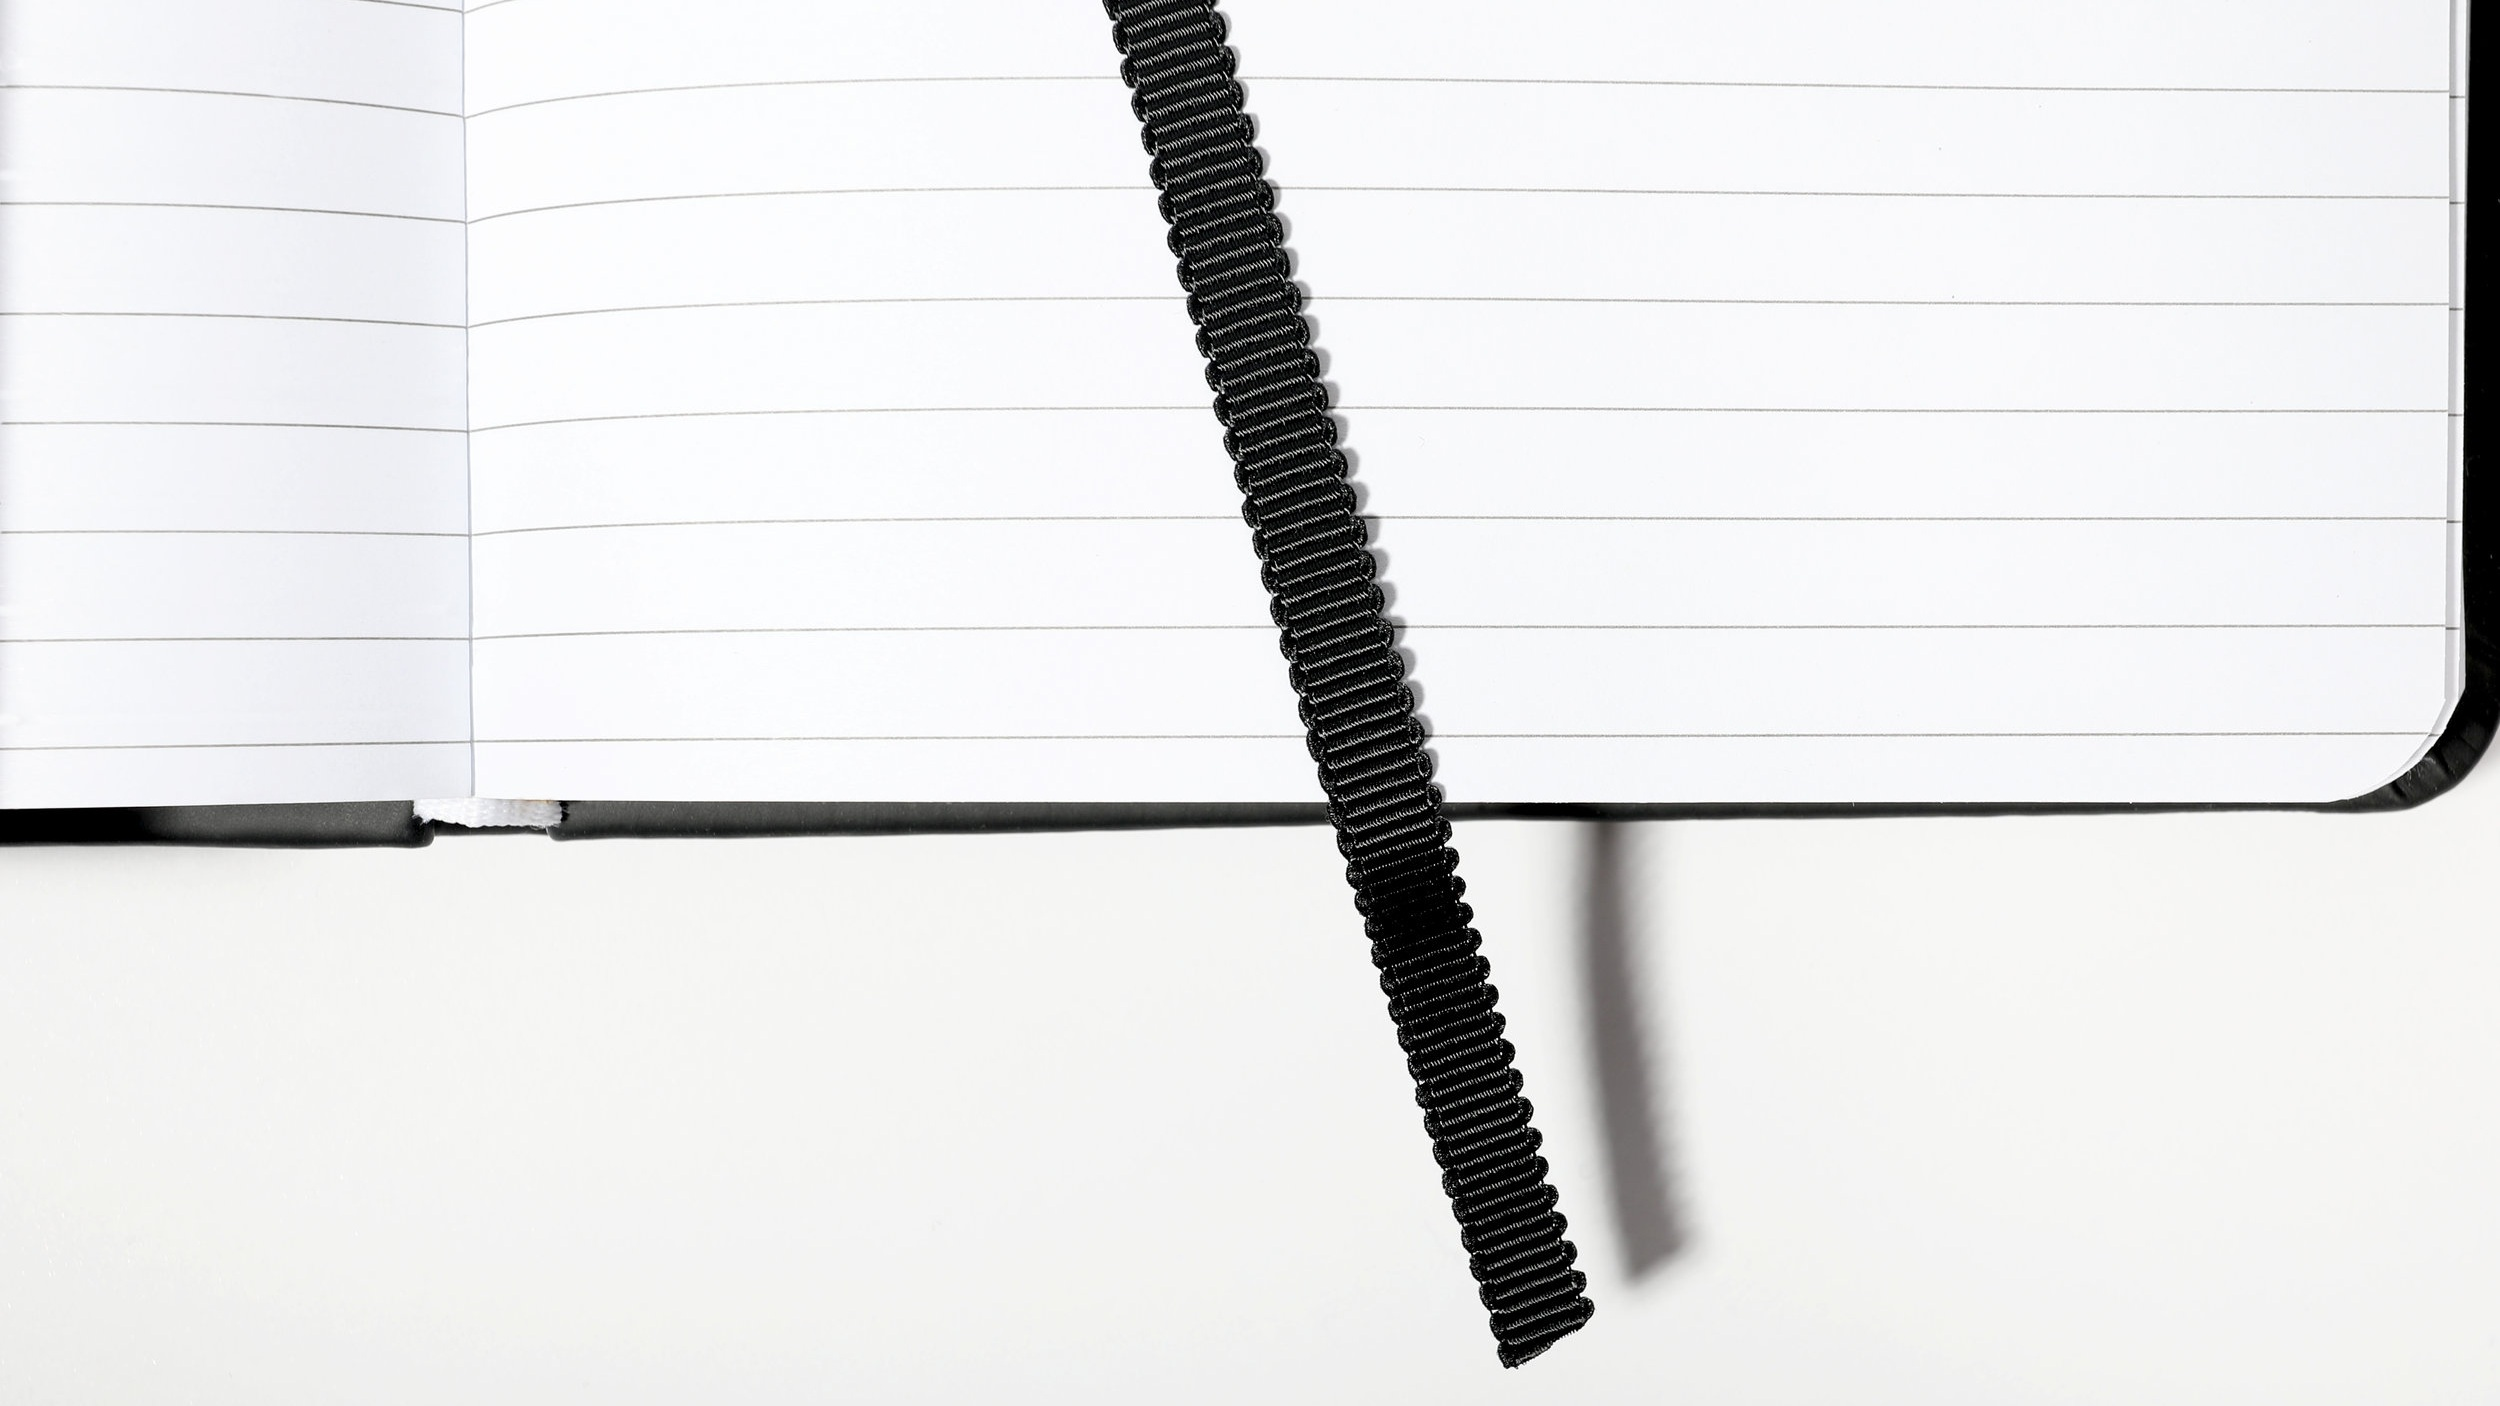 Grosgrain Bookmark - All our notebooks feature a signature black grosgrain bookmark. Style is all in the details.